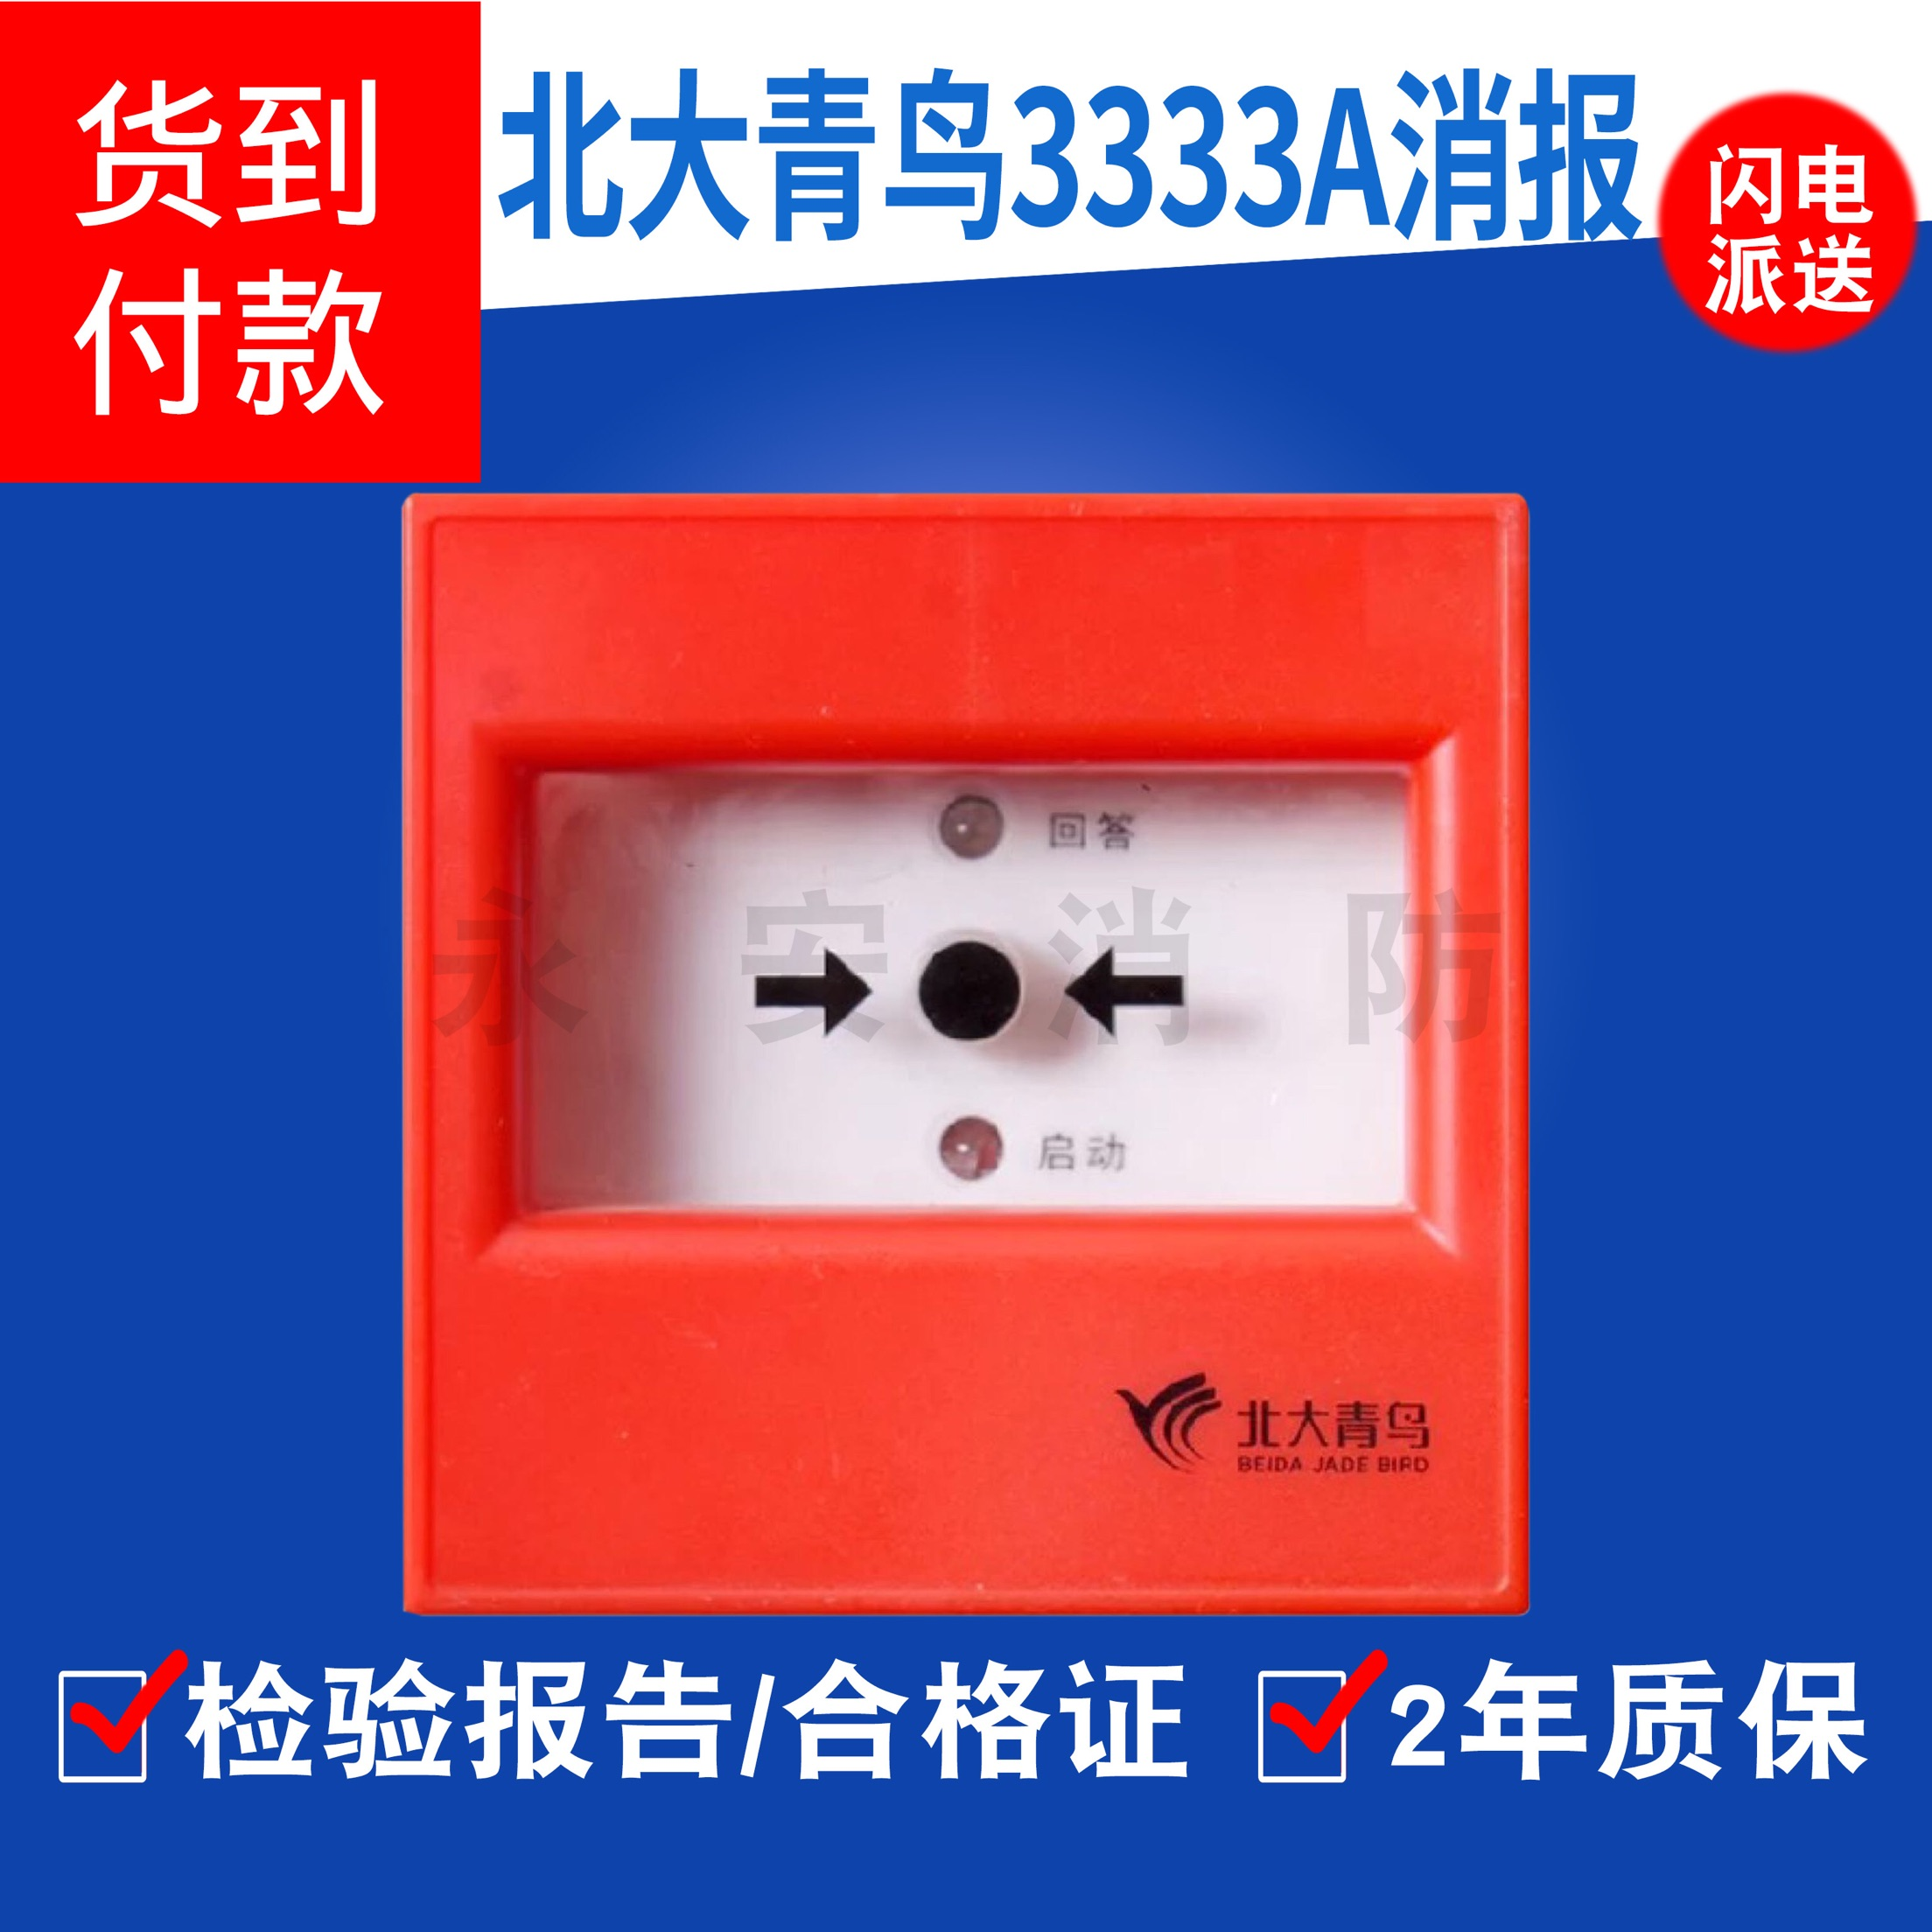 JBF-3333A Fire Hydrant Fire Start Pump Button with No Bottom 5 Packages